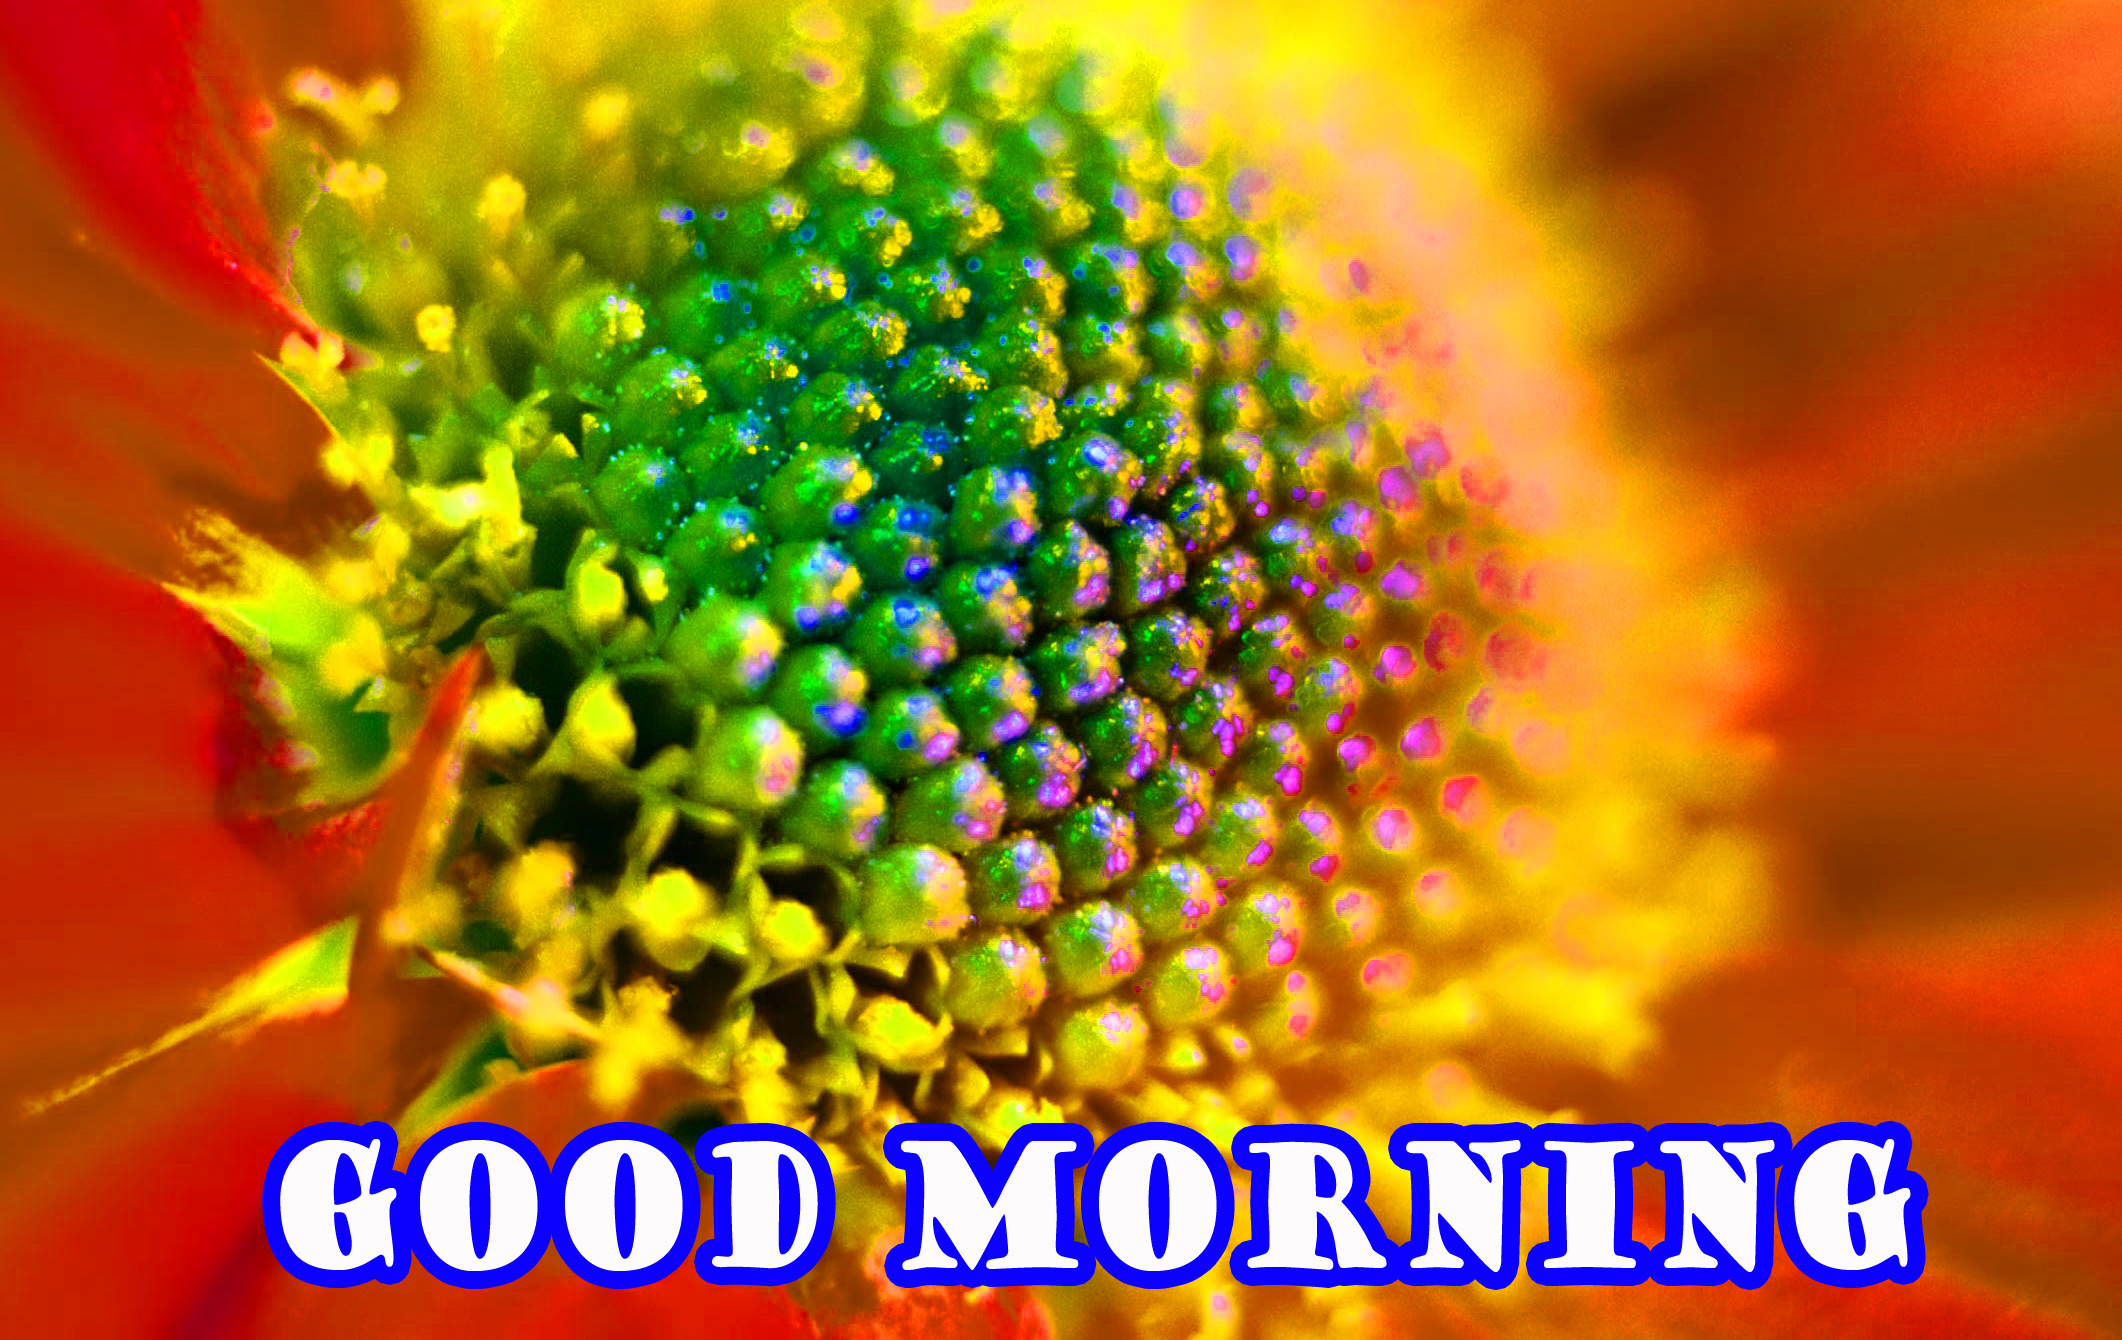 Good Morning Flowers Wallpaper Pictures Images For Whatsapp